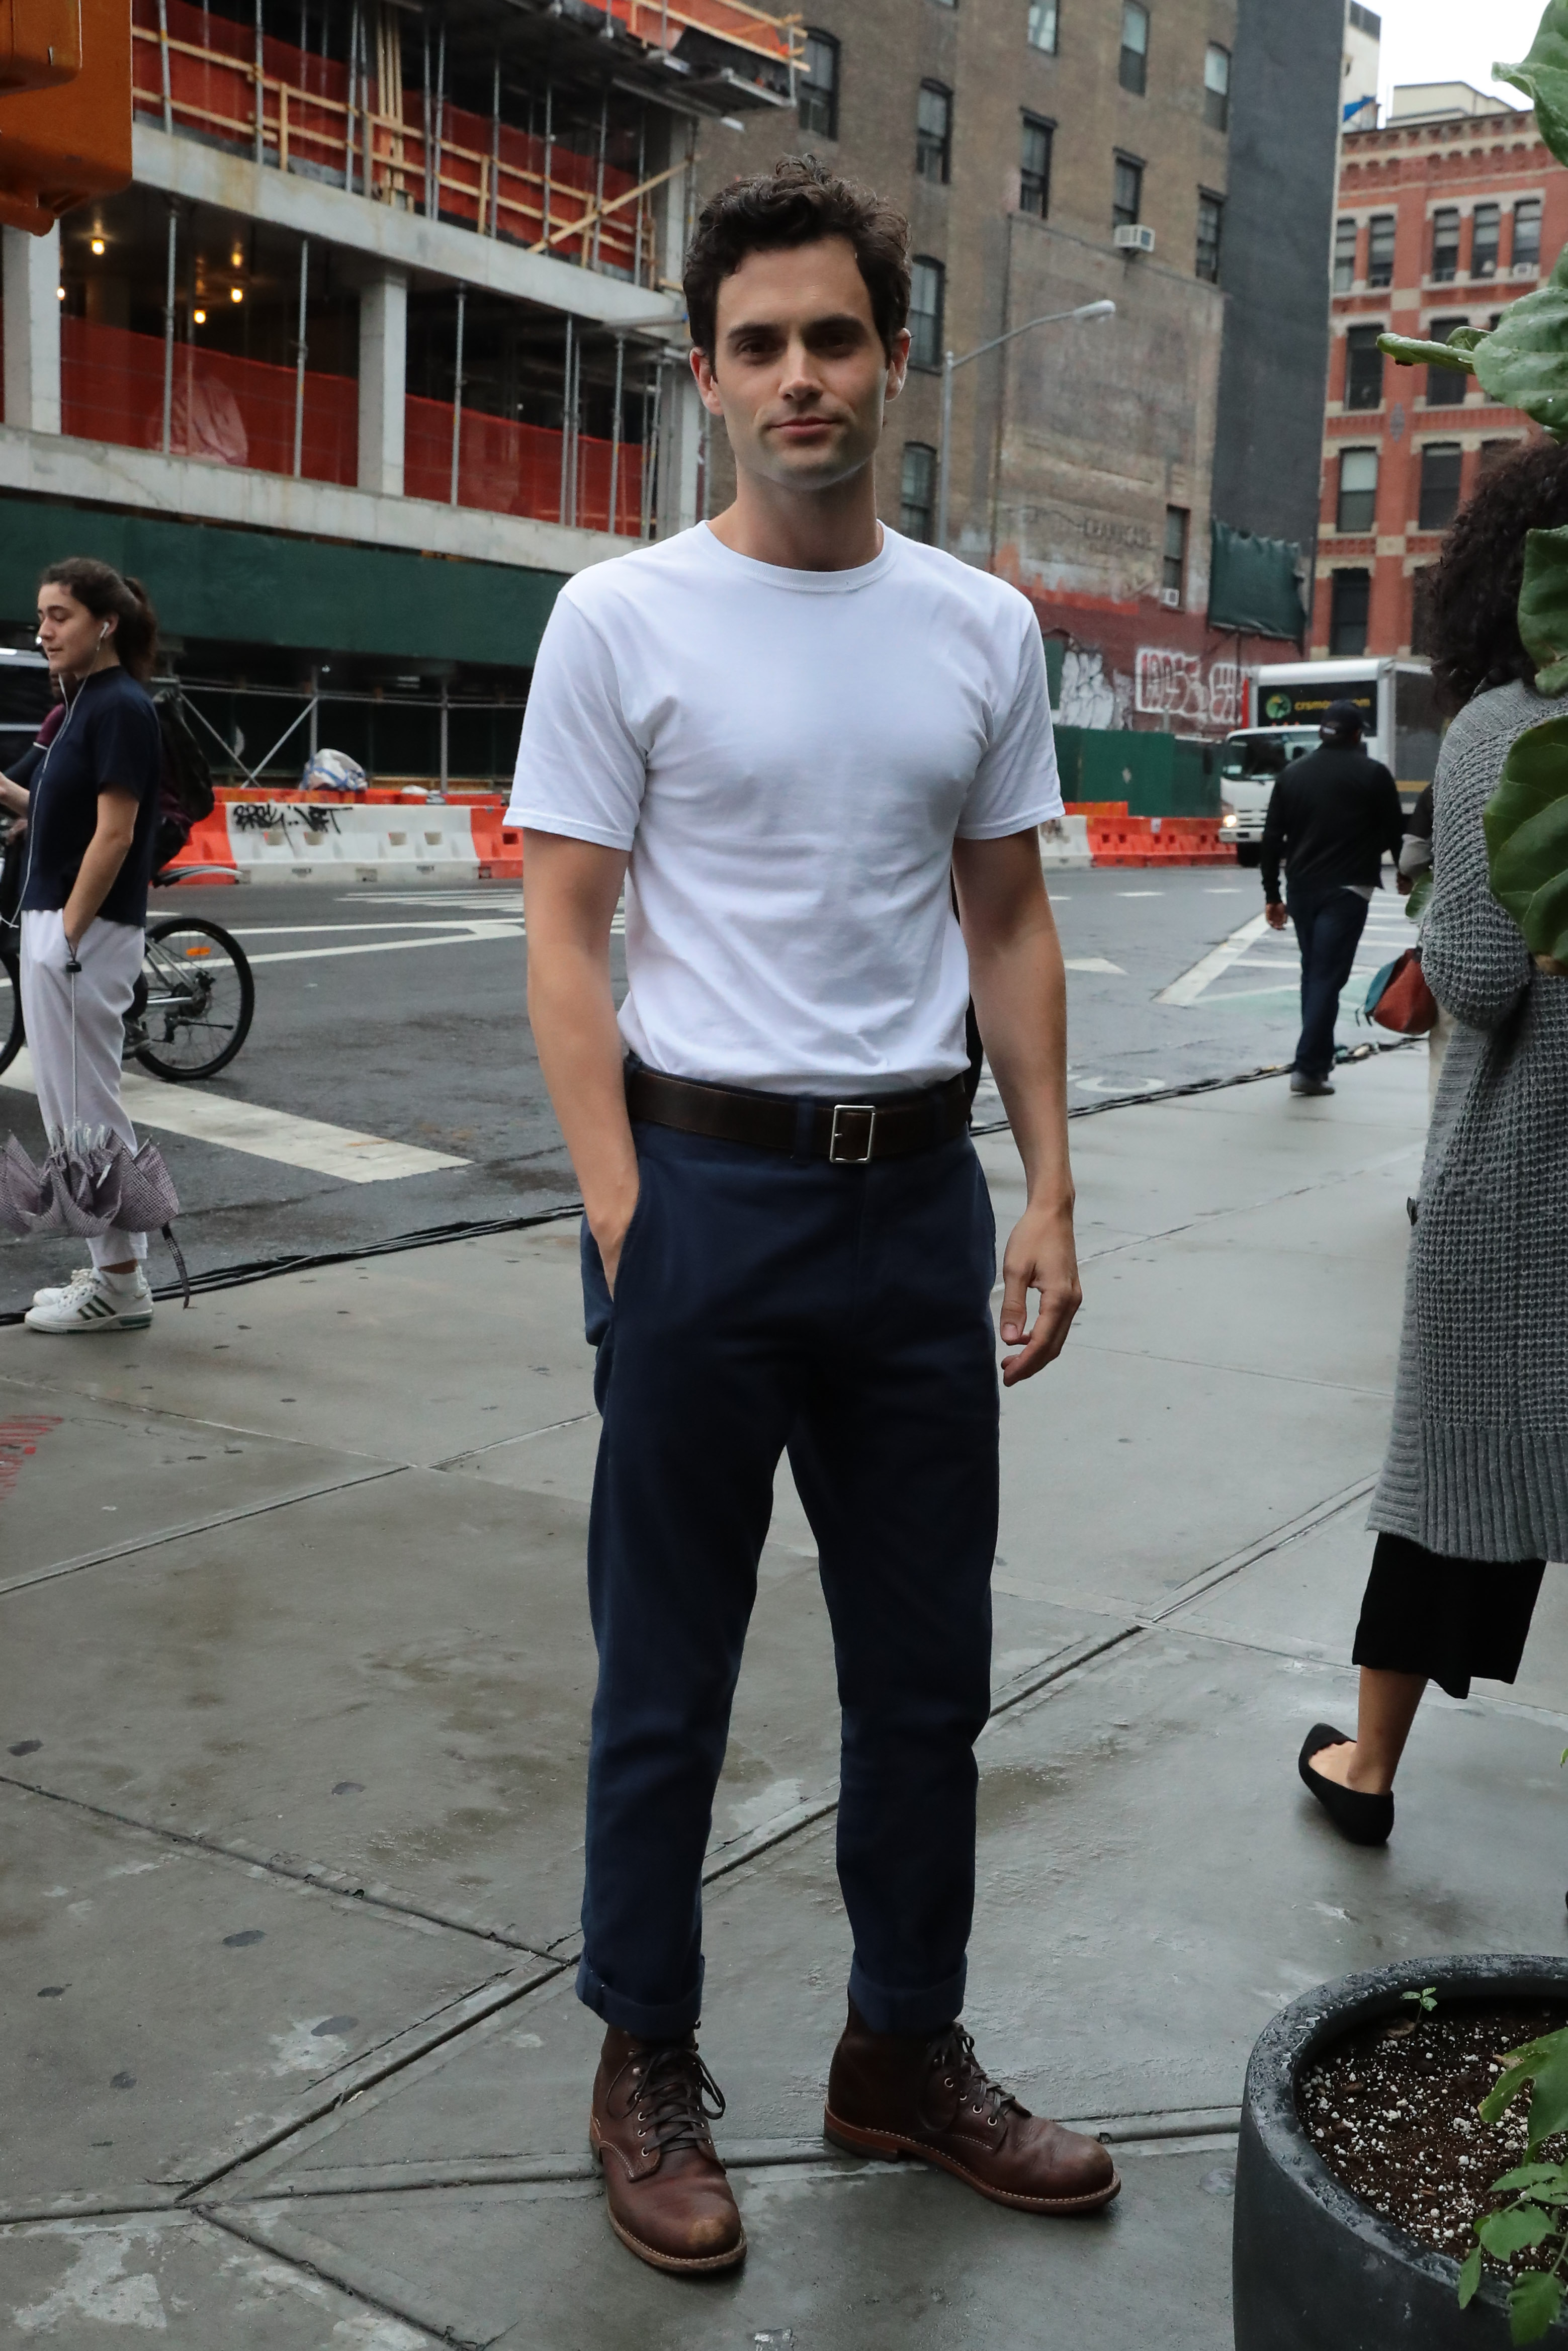 Penn Badgley seen out and about in New York City. <P> Pictured: Penn Badgley <B>Ref: SPL1569406  060917  </B><BR/> Picture by: NIGNY / Splash News<BR/> </P><P> <B>Splash News and Pictures</B><BR/> Los Angeles:310-821-2666<BR/> New York:212-619-2666<BR/> London:870-934-2666<BR/> <span id=